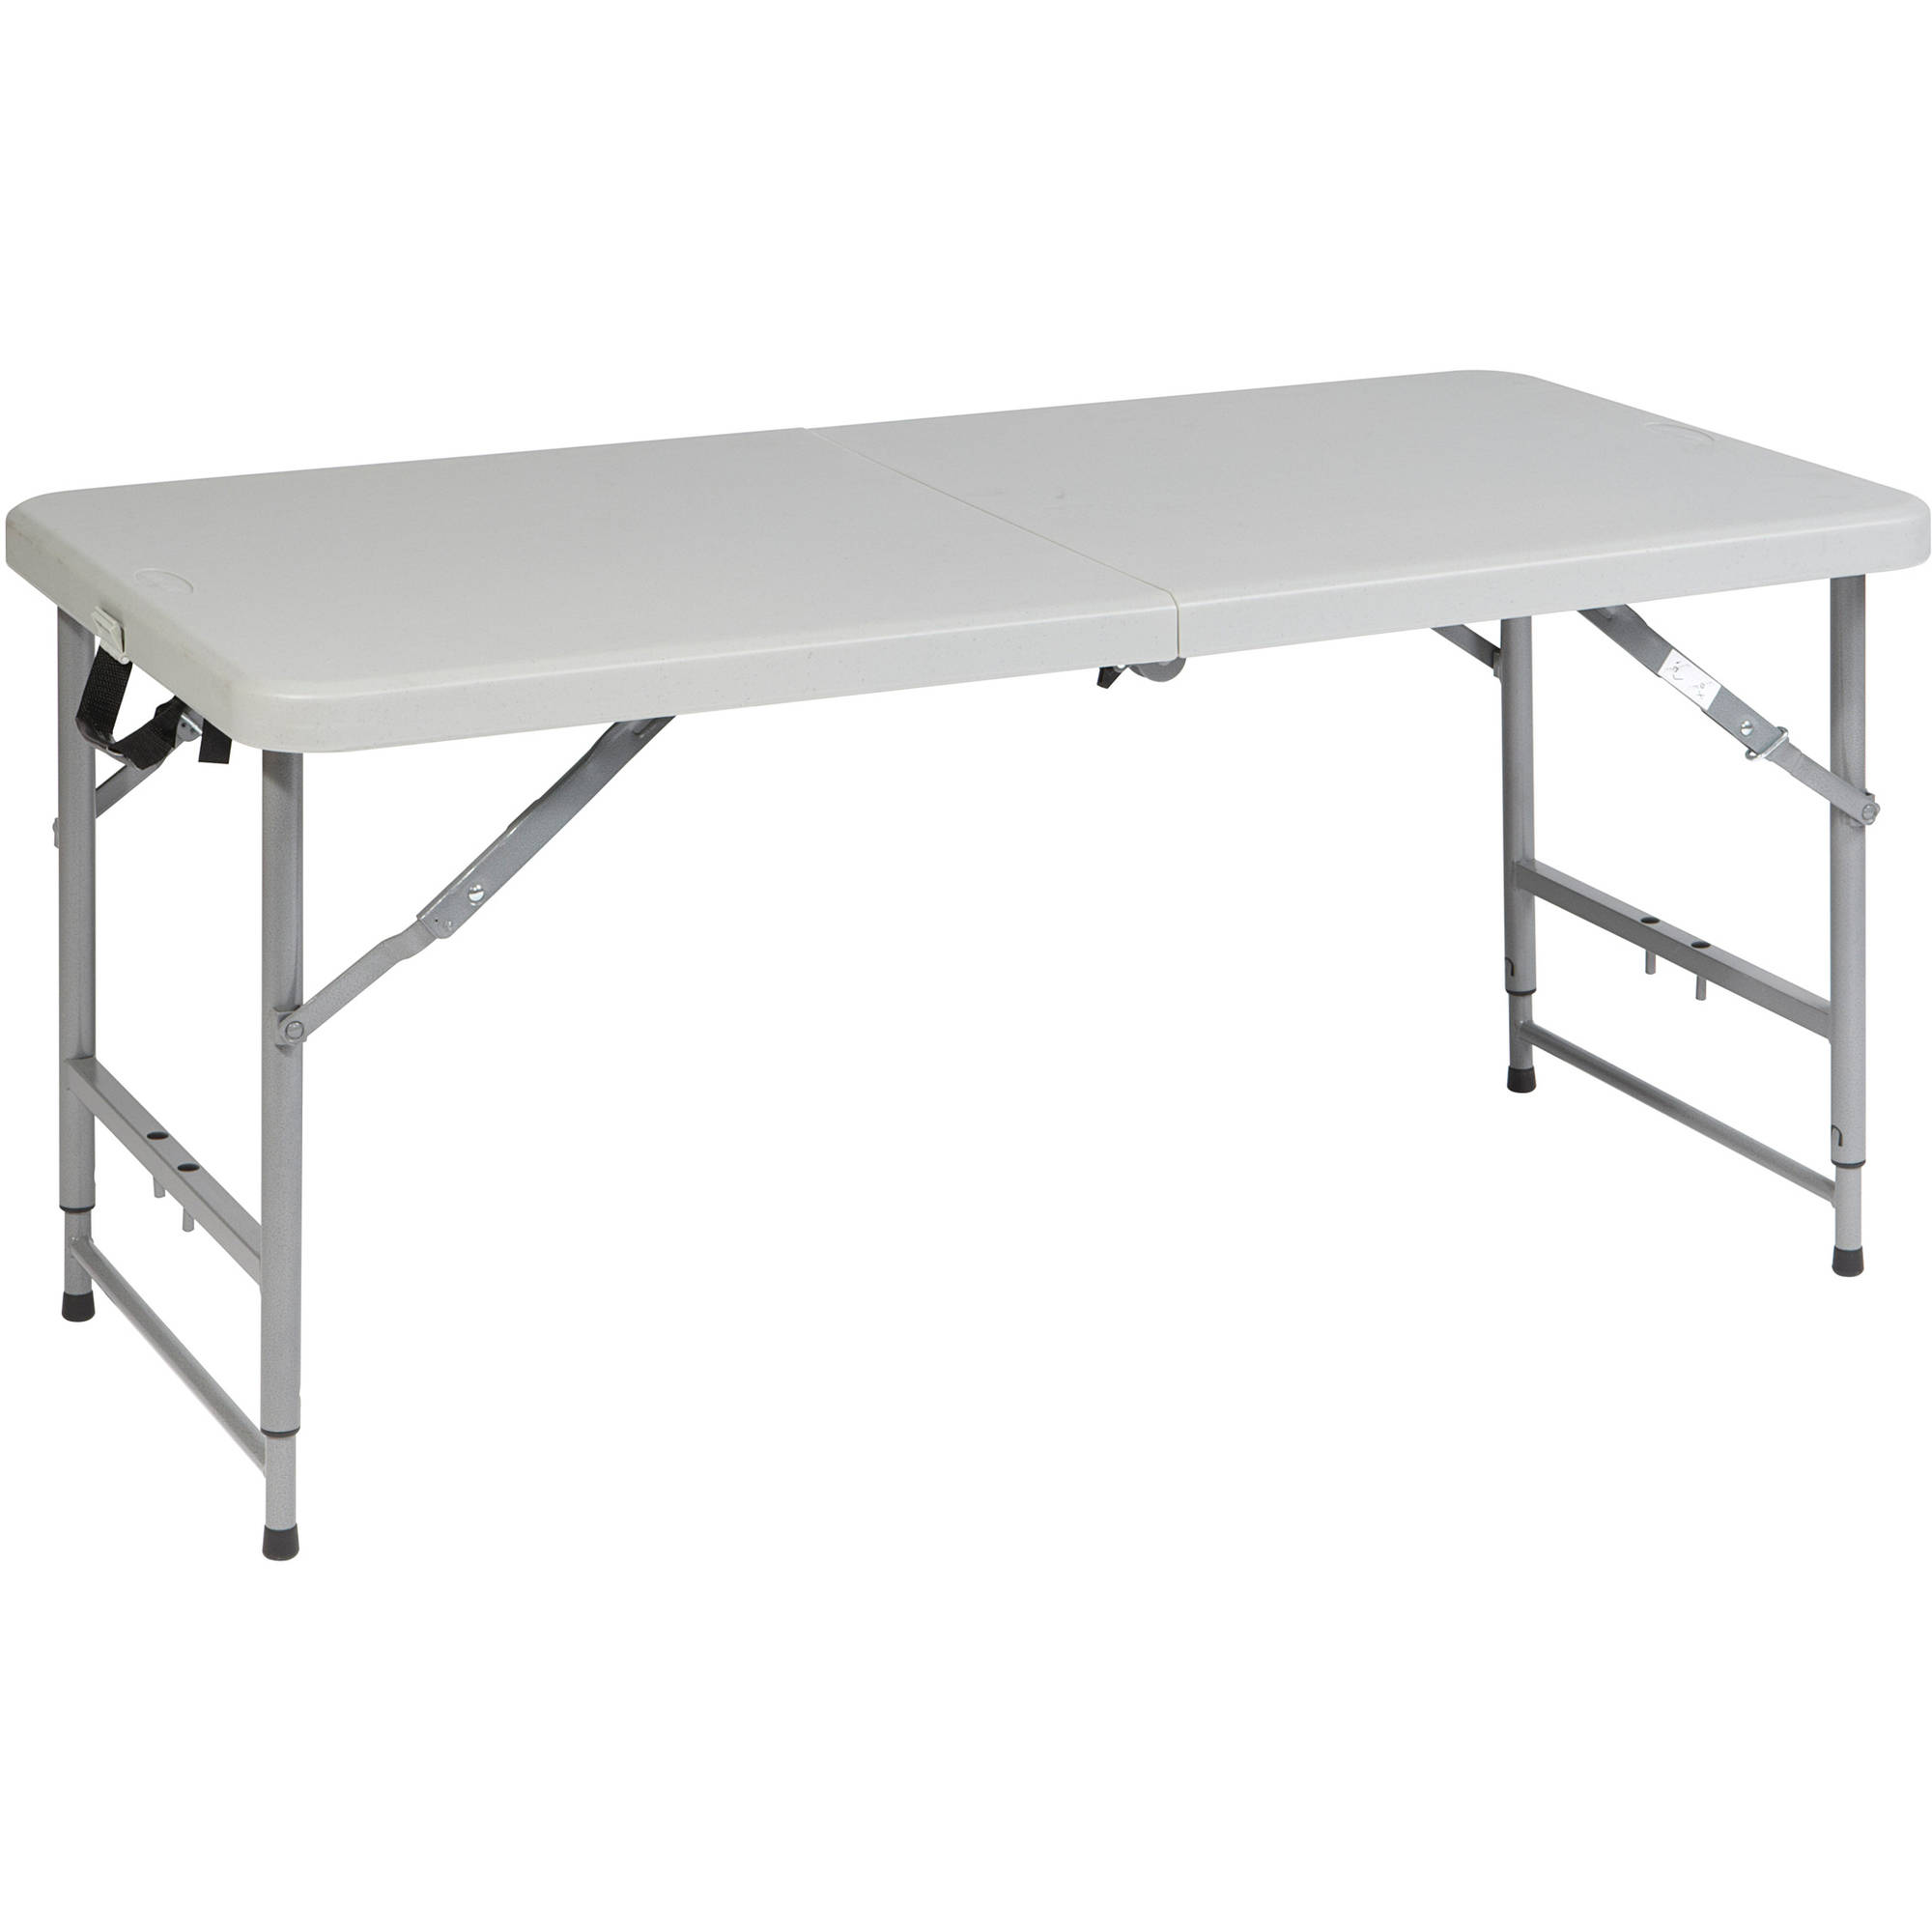 Tall Folding Table Extra Uk 36 Inch Legs And Chairs Tables For Sale High End Card Walmart Argos Top Outdoor Gear Home Depot Expocafeperu Com